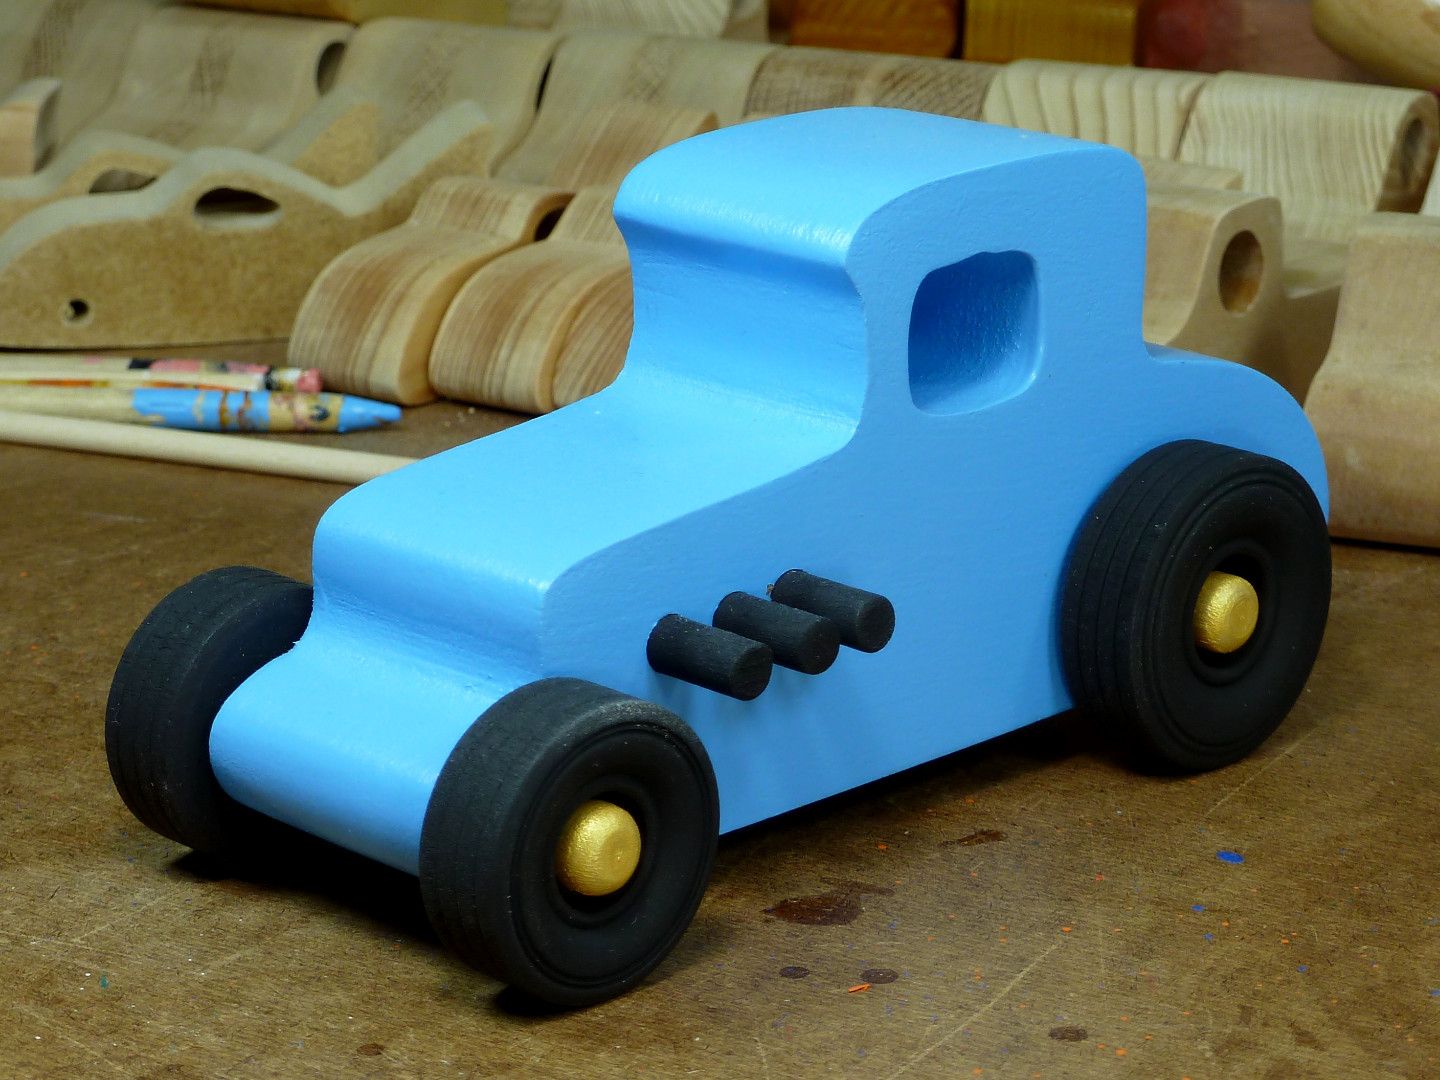 20170522-192500 Wooden Toy Car - Hot Rod Freaky Ford - 27 T Coupe - MDF - Blue - Black - Gold 01.jpg